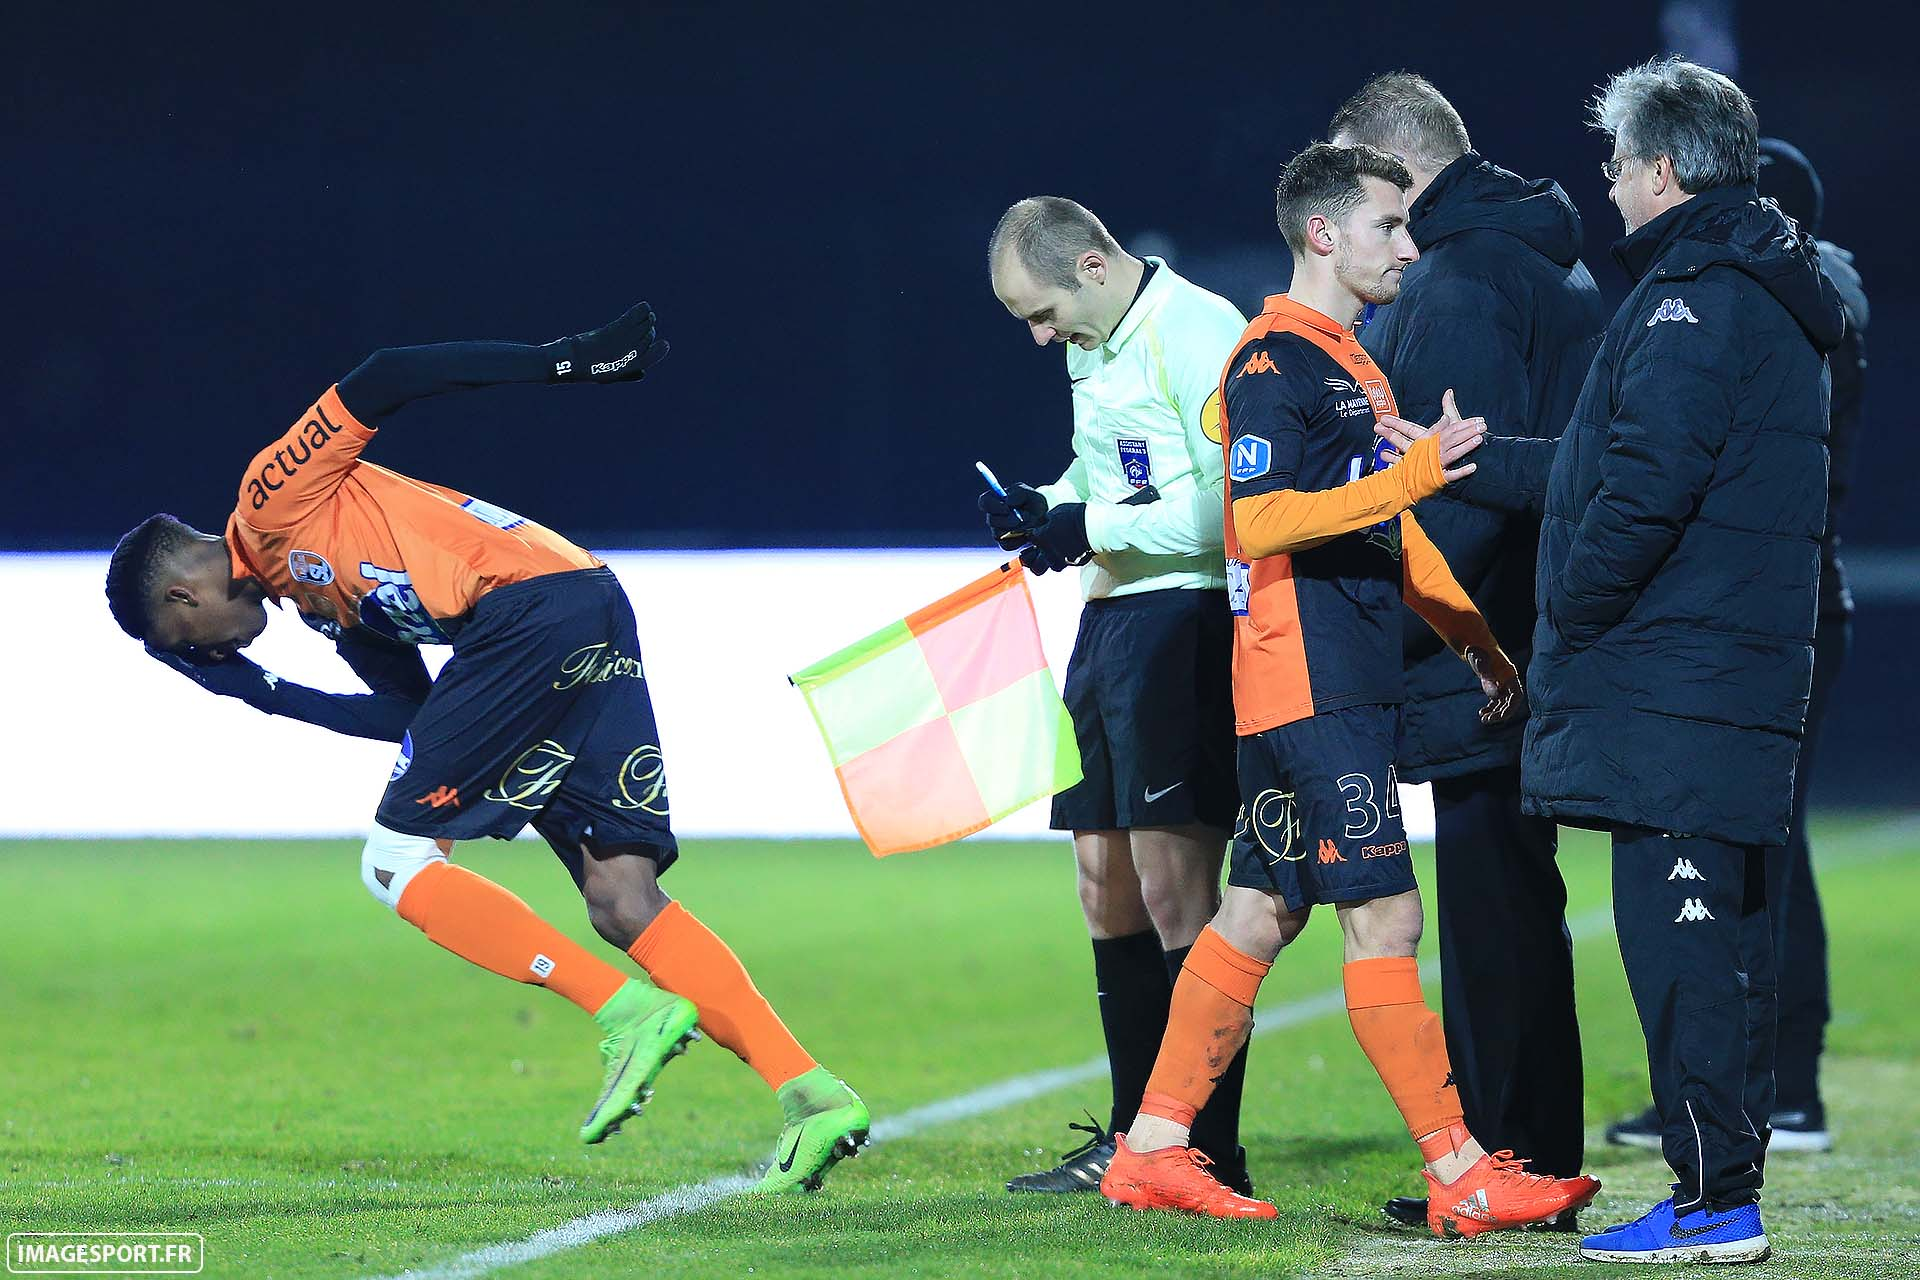 28-stade-lavallois-imagesport-neyou-rousselet